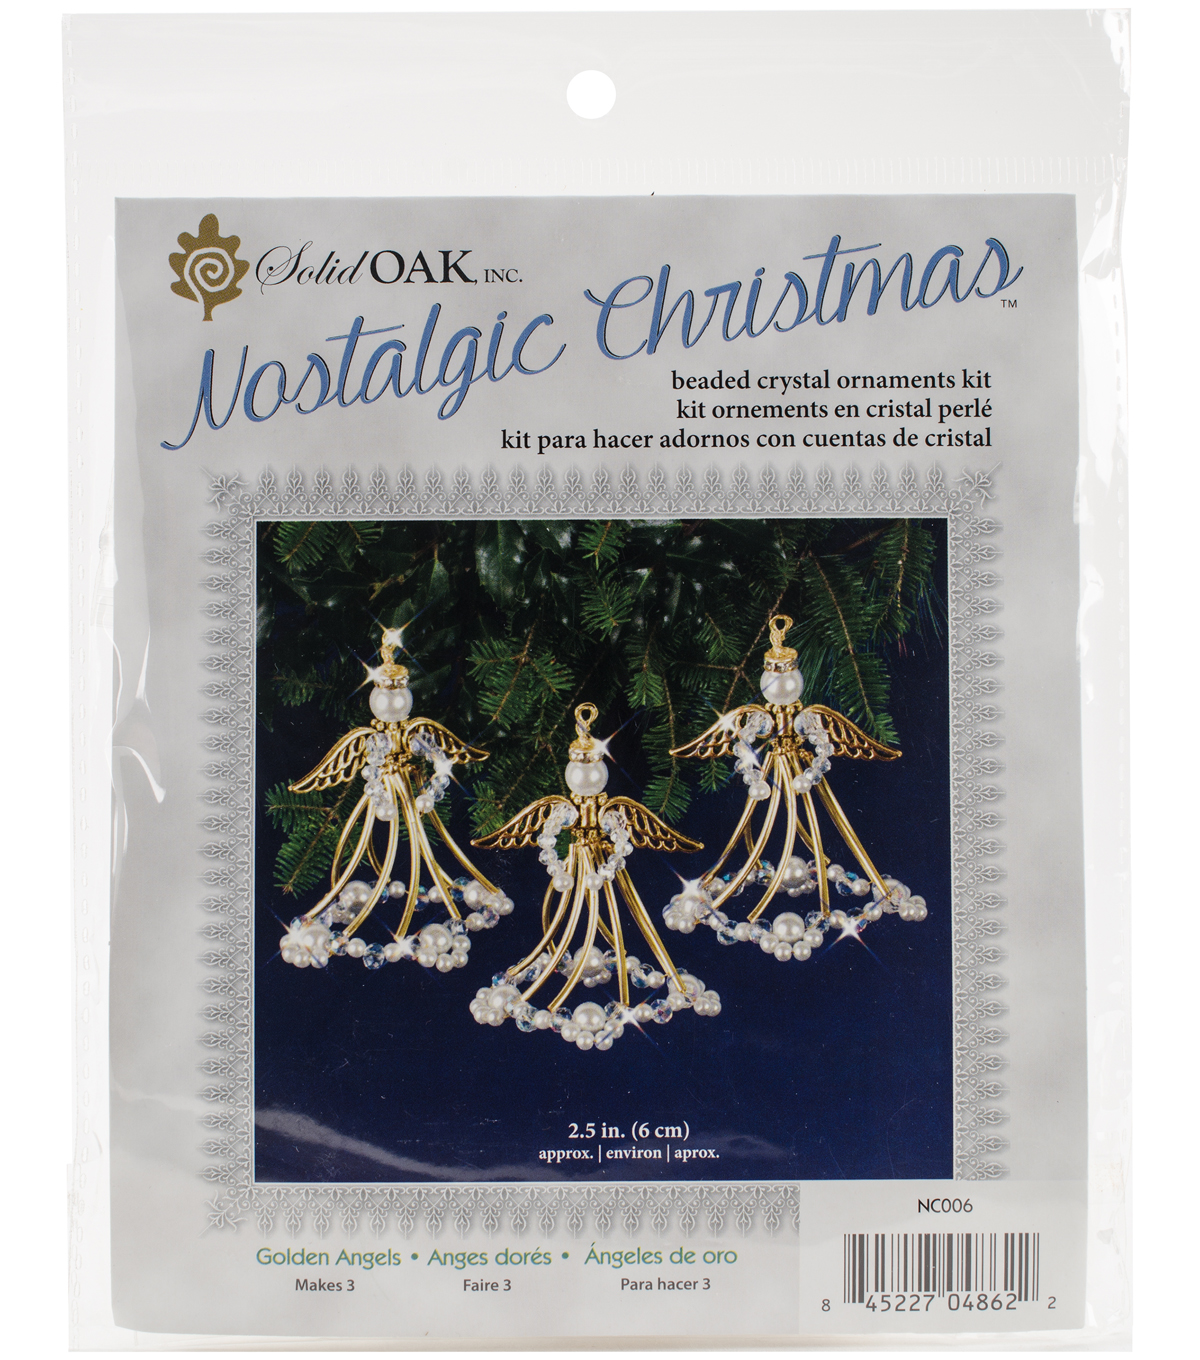 Solid Oak Nostalgic Christmas Beaded Crystal Ornaments Kit-Golden Angels